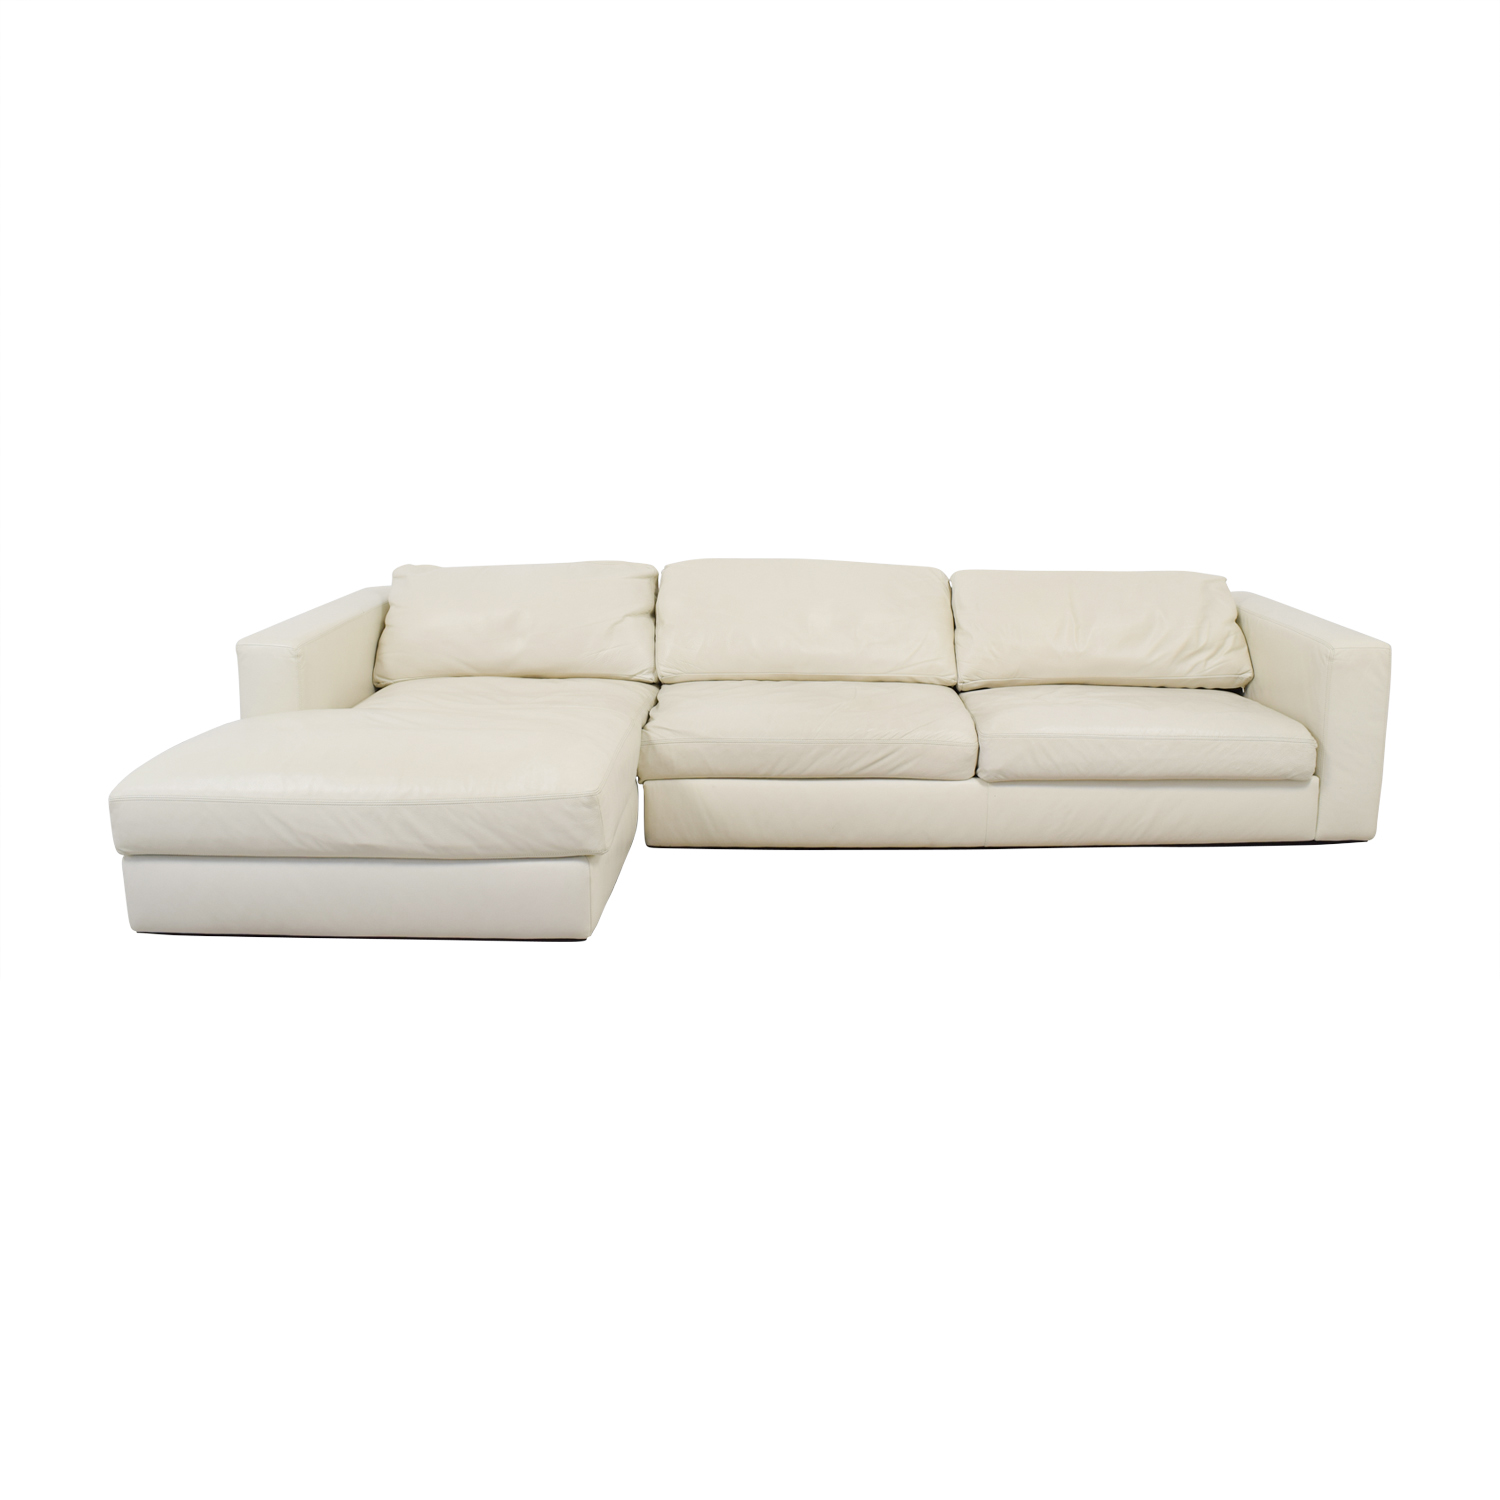 shop Design Within Reach by Jeffrey Bernett Reid White Left Chaise Sectional Design Within Reach Sofas